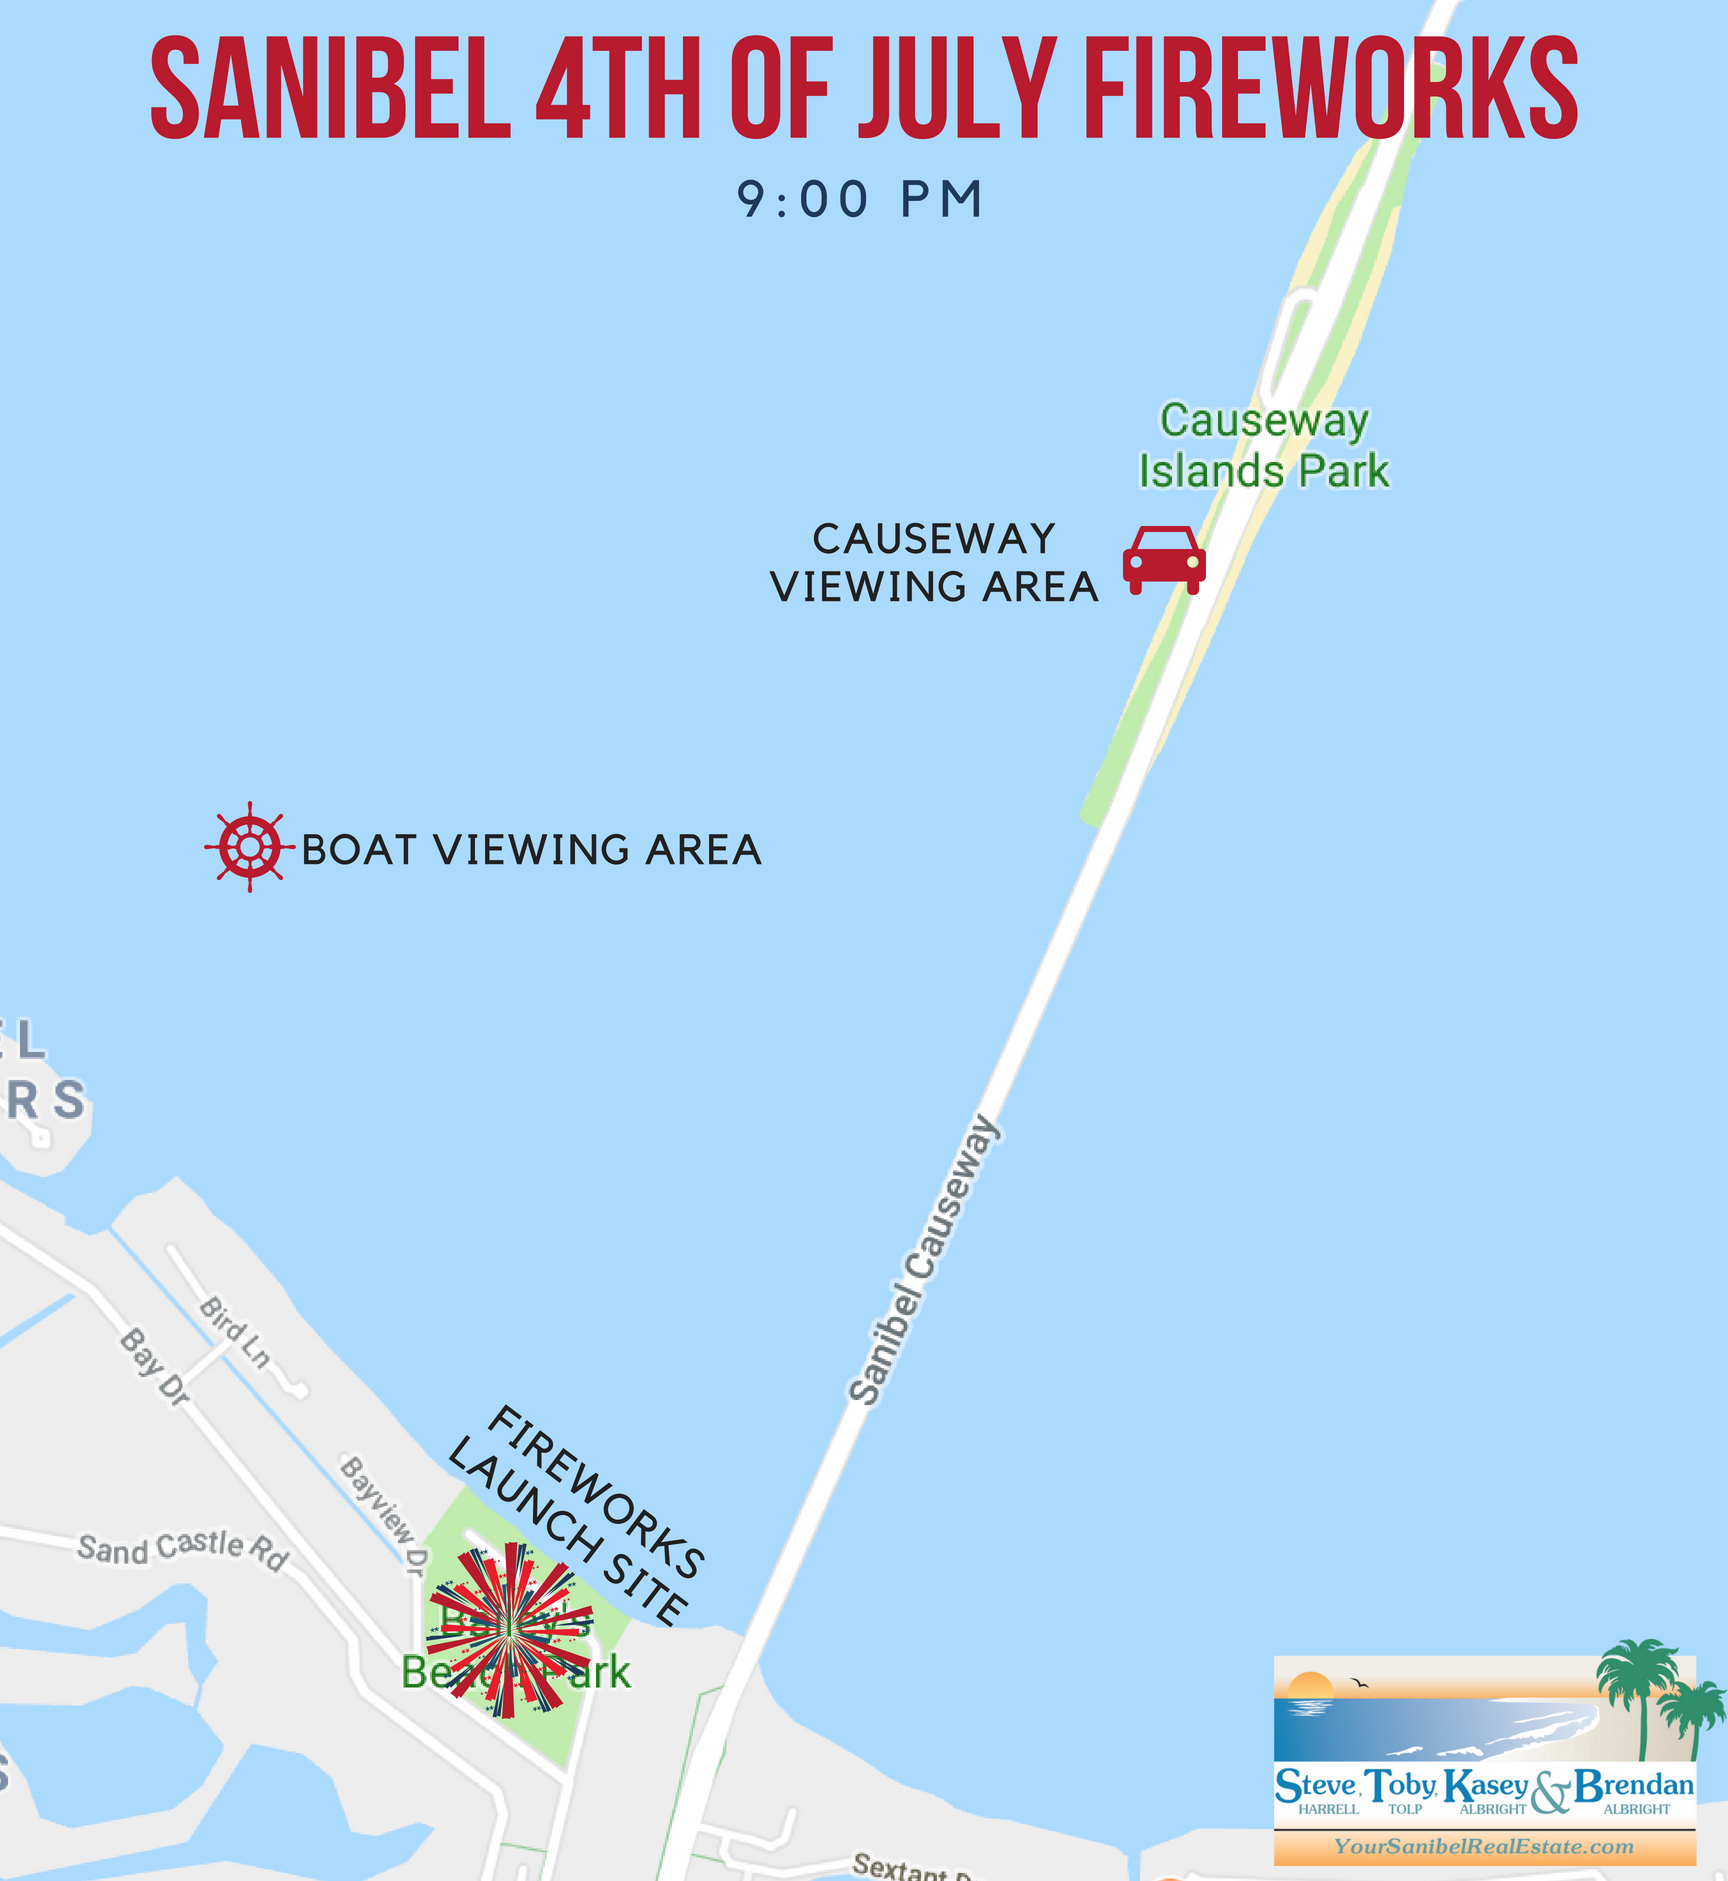 sanibel_4th_of_july_fireworks